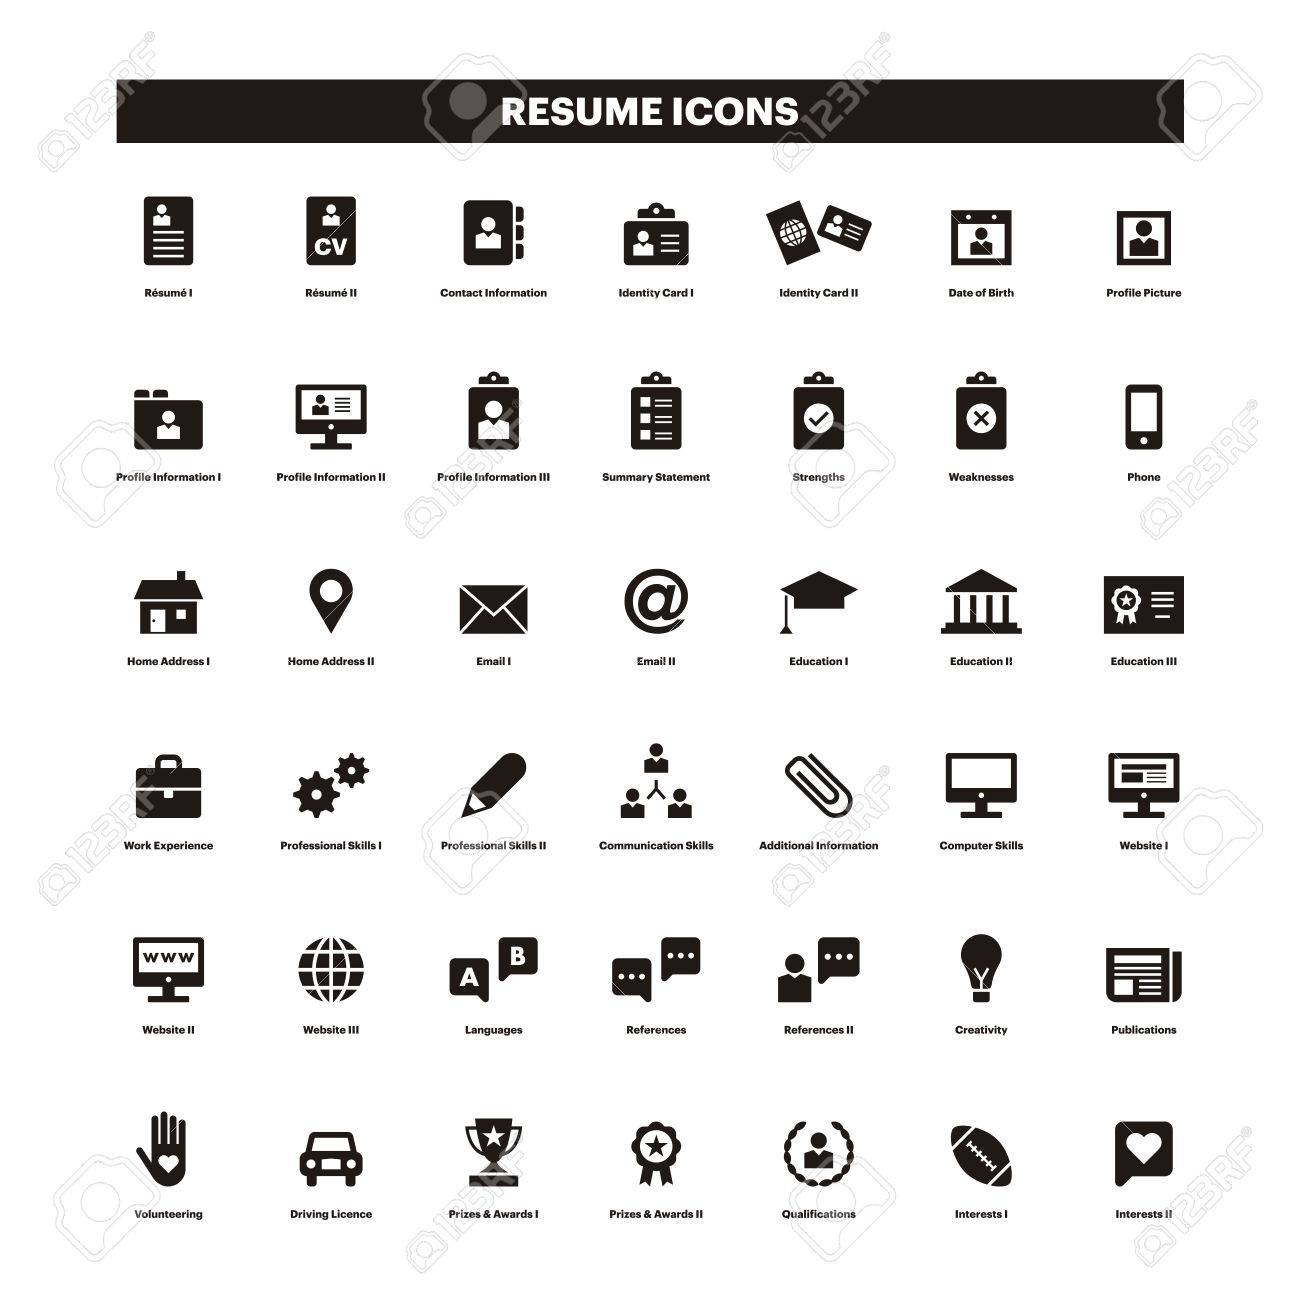 sample resume with icons